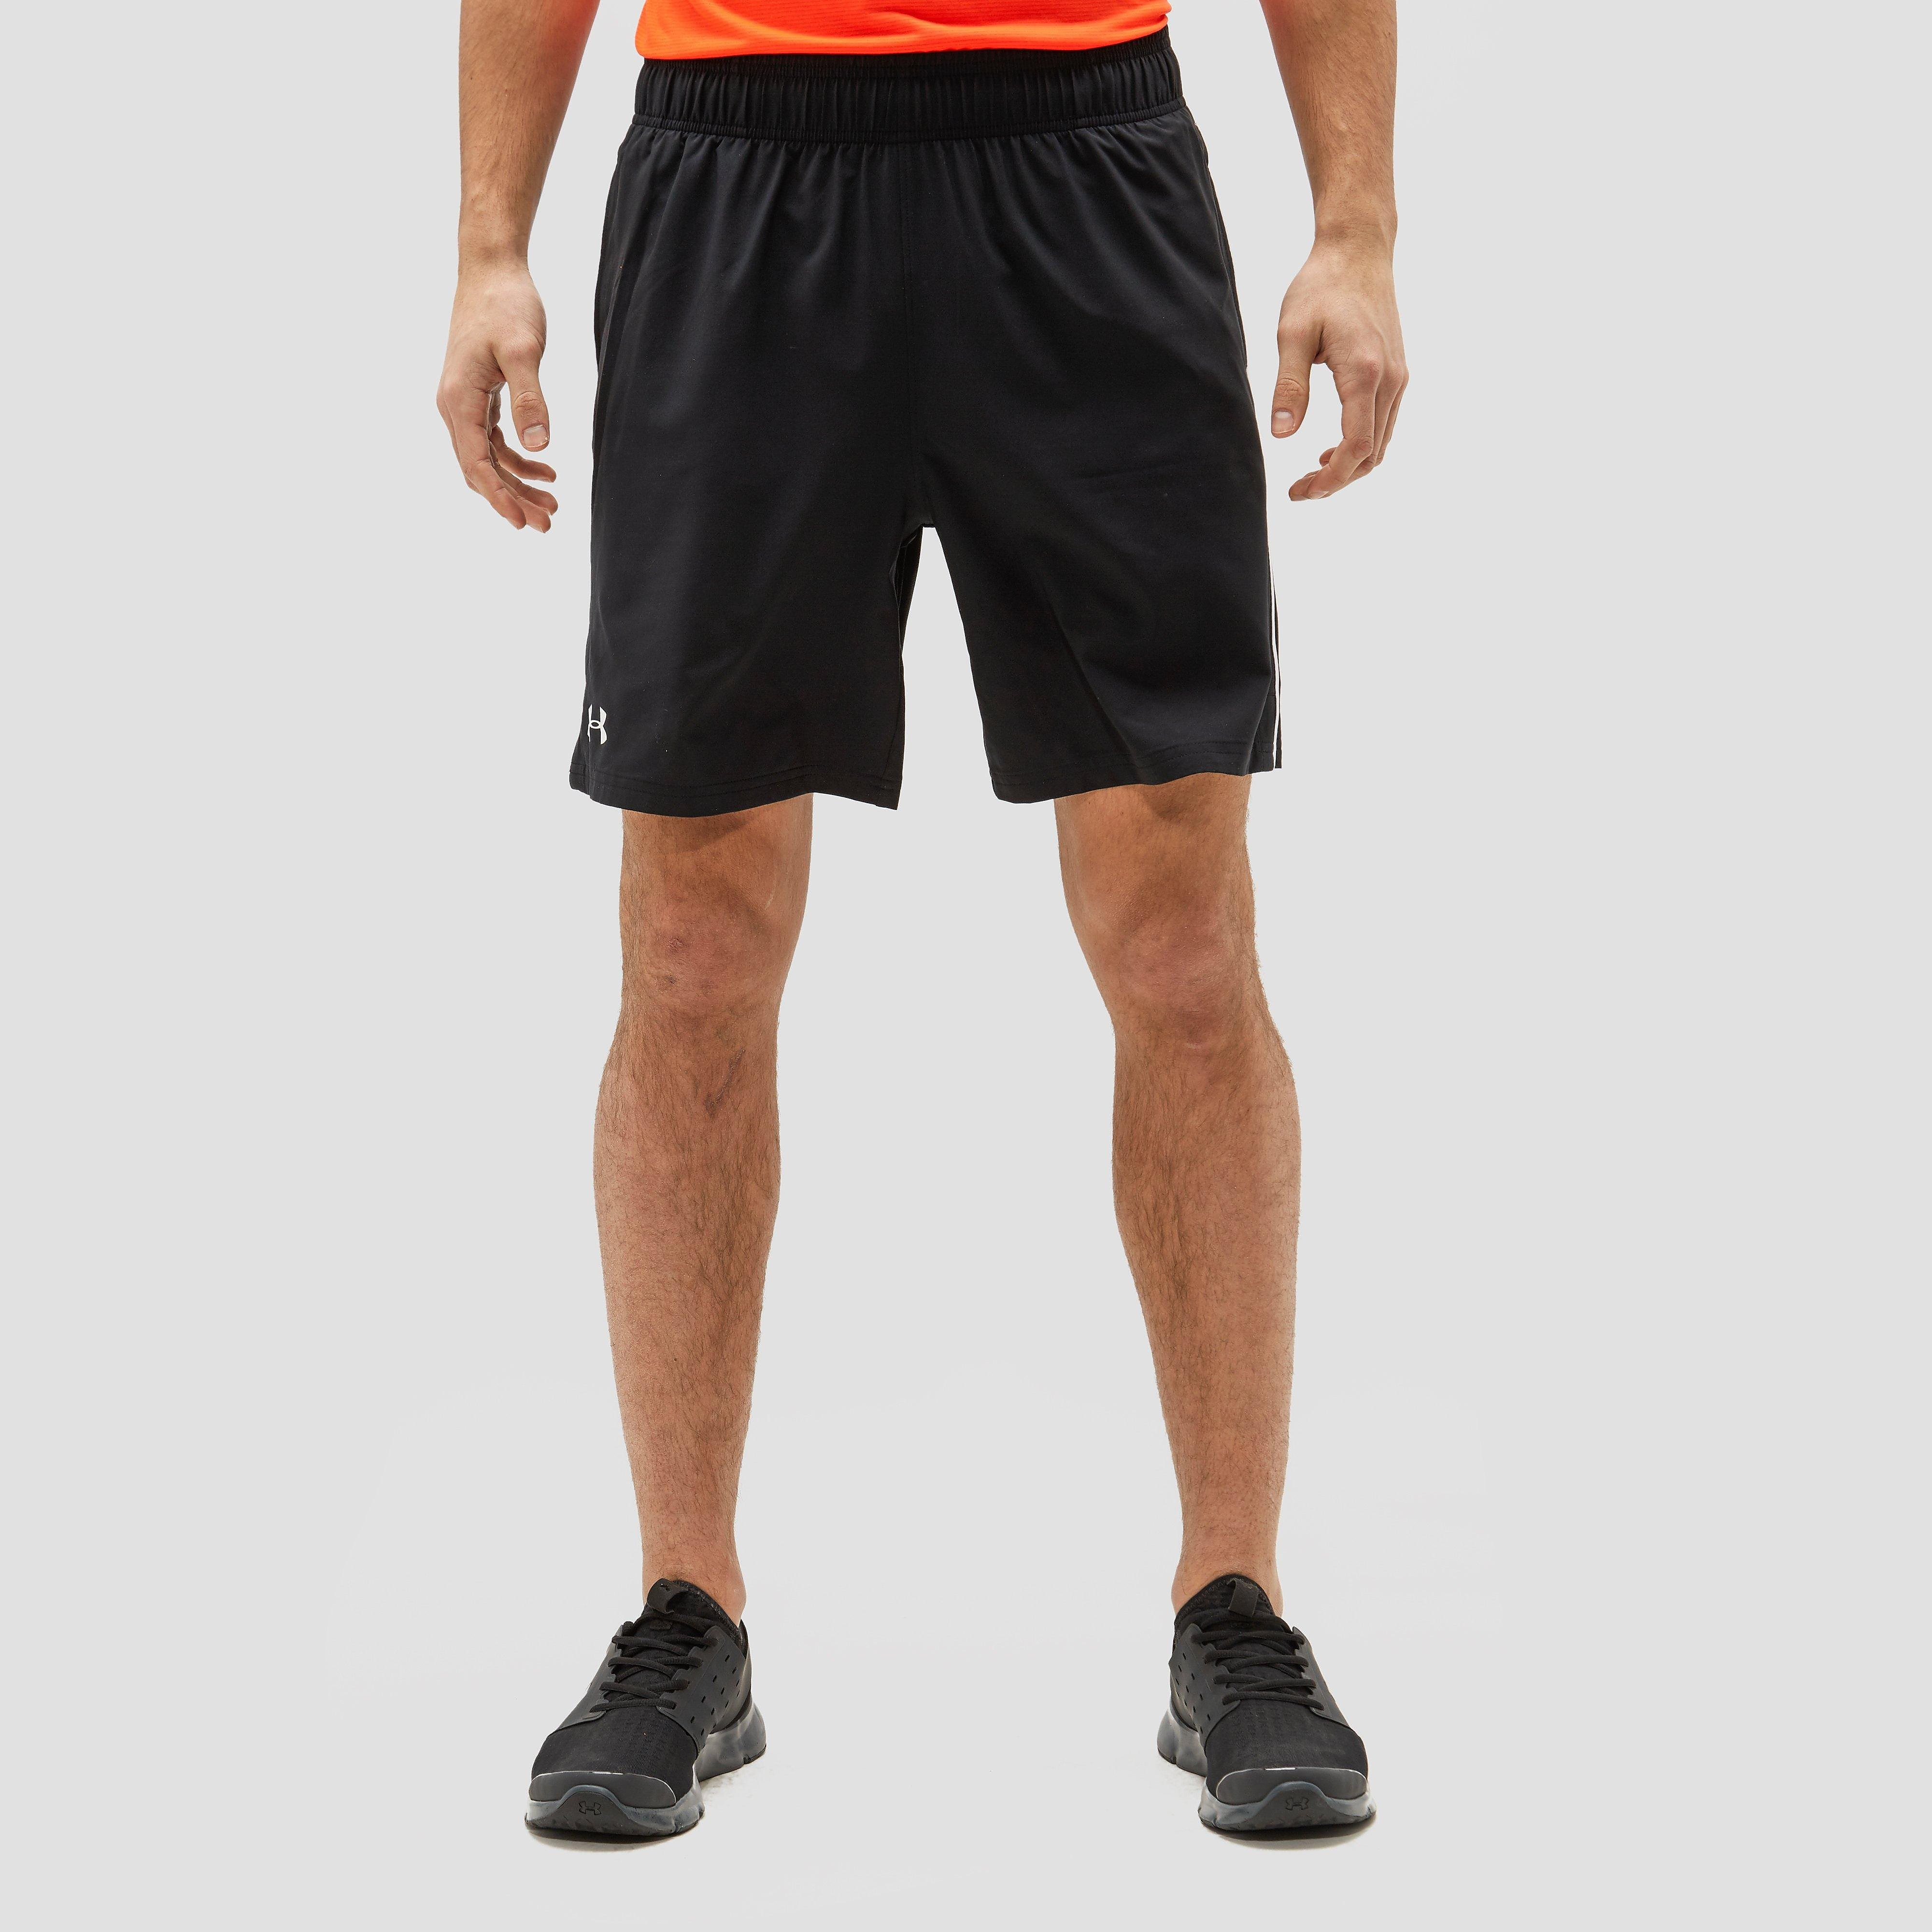 UNDER ARMOUR 8-INCH MIRAGE SHORT HEREN